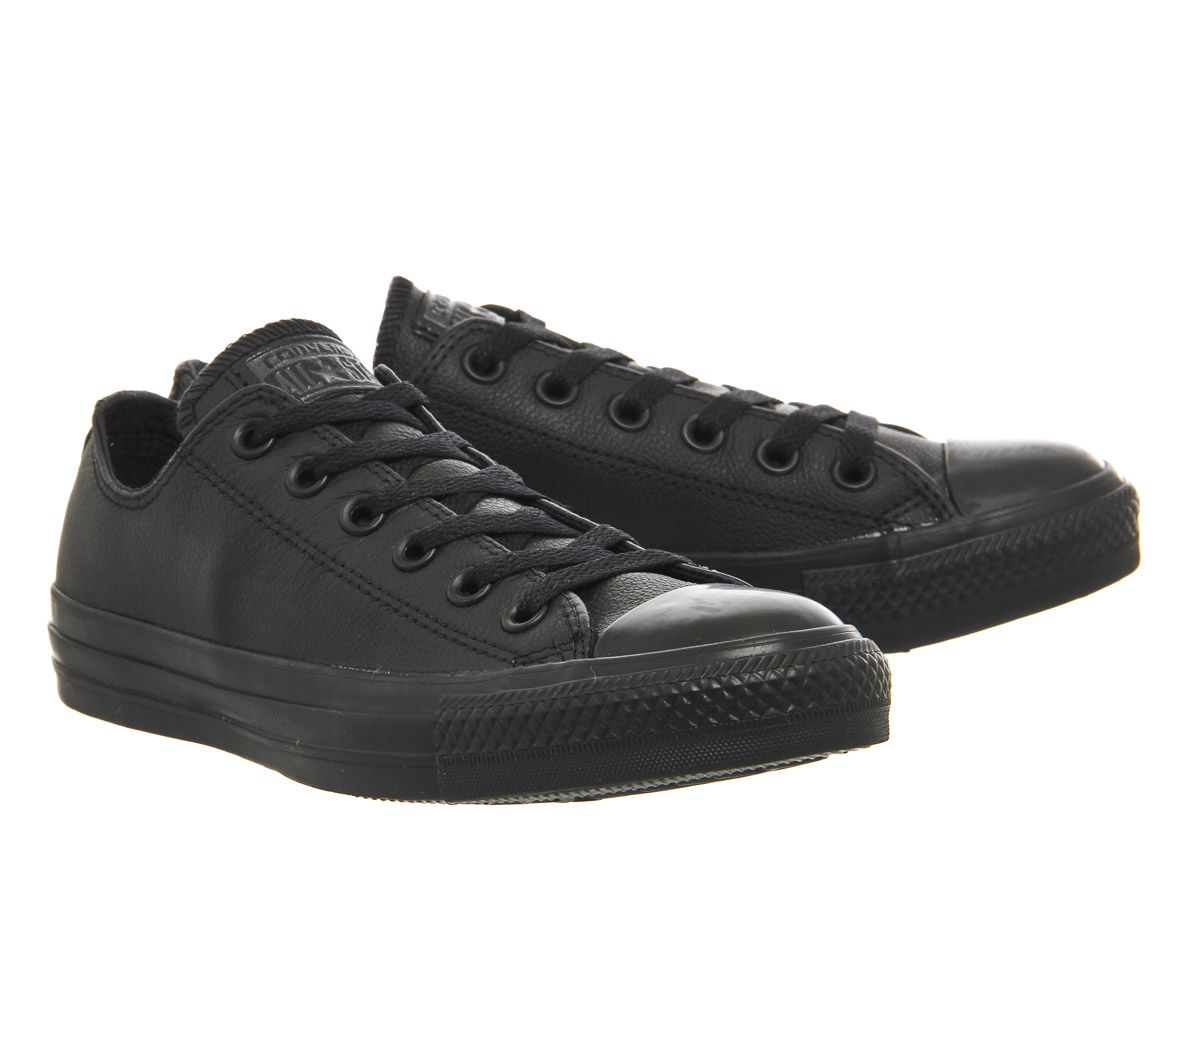 Womens-Converse-All-Star-Low-Leather-Flash-Black-Mono-Trainers-Shoes thumbnail 7